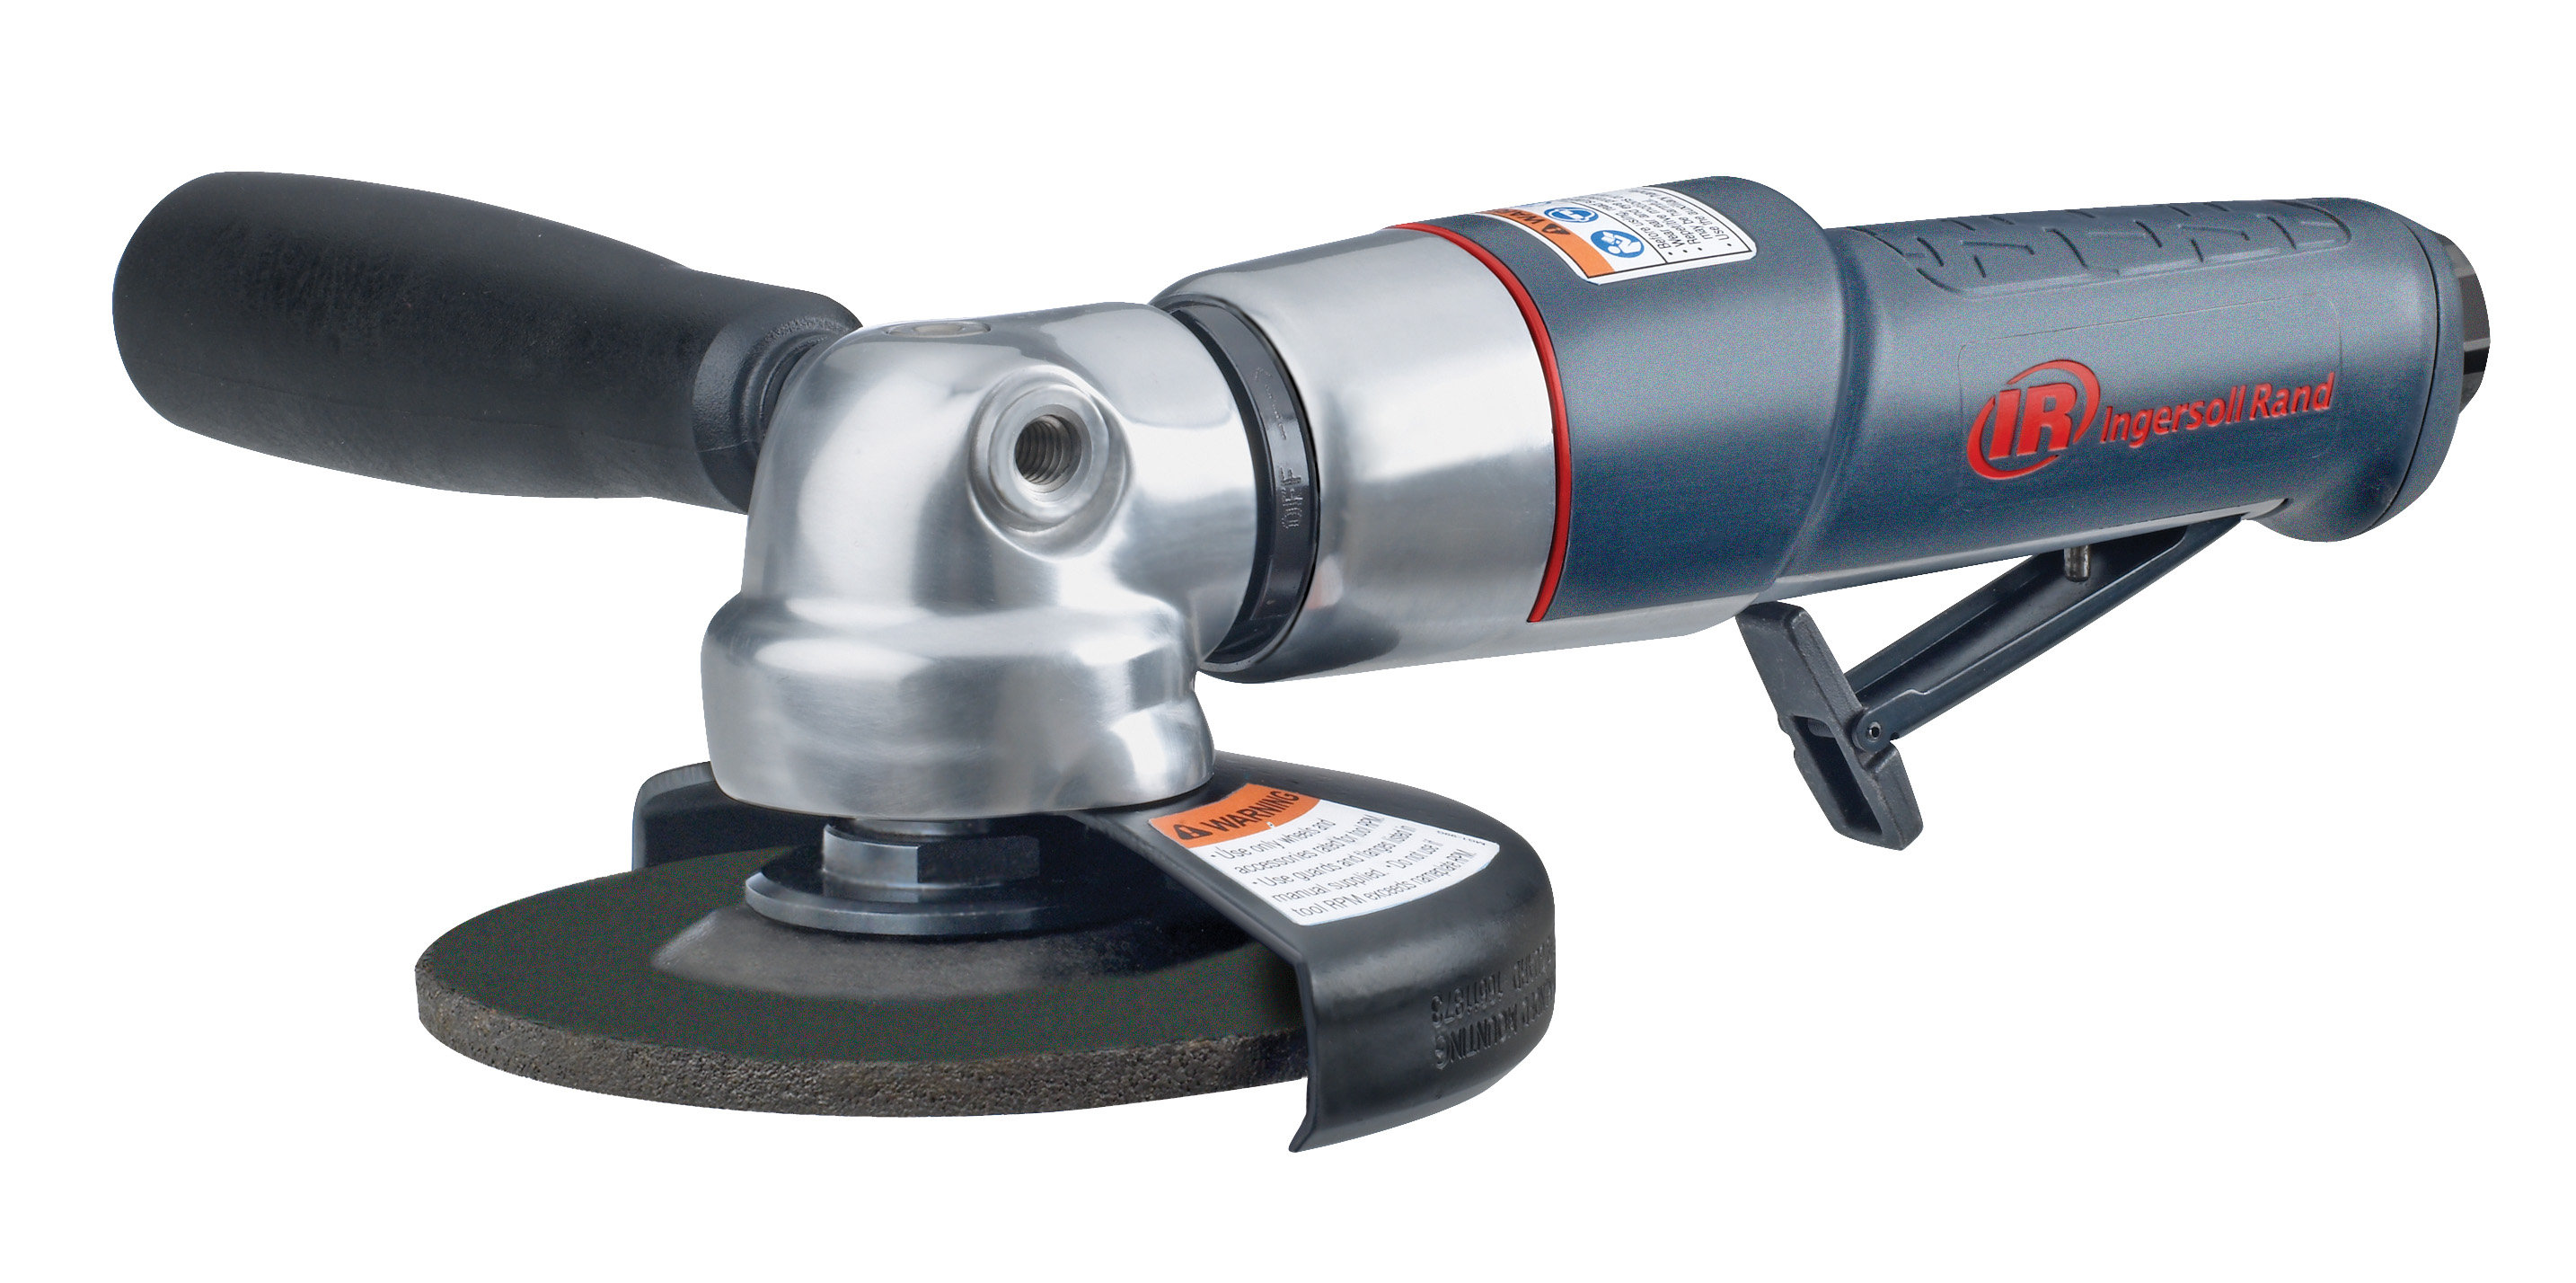 Ingersoll Rand 3445MAX 4-1/2-Inch Air Angle Grinder